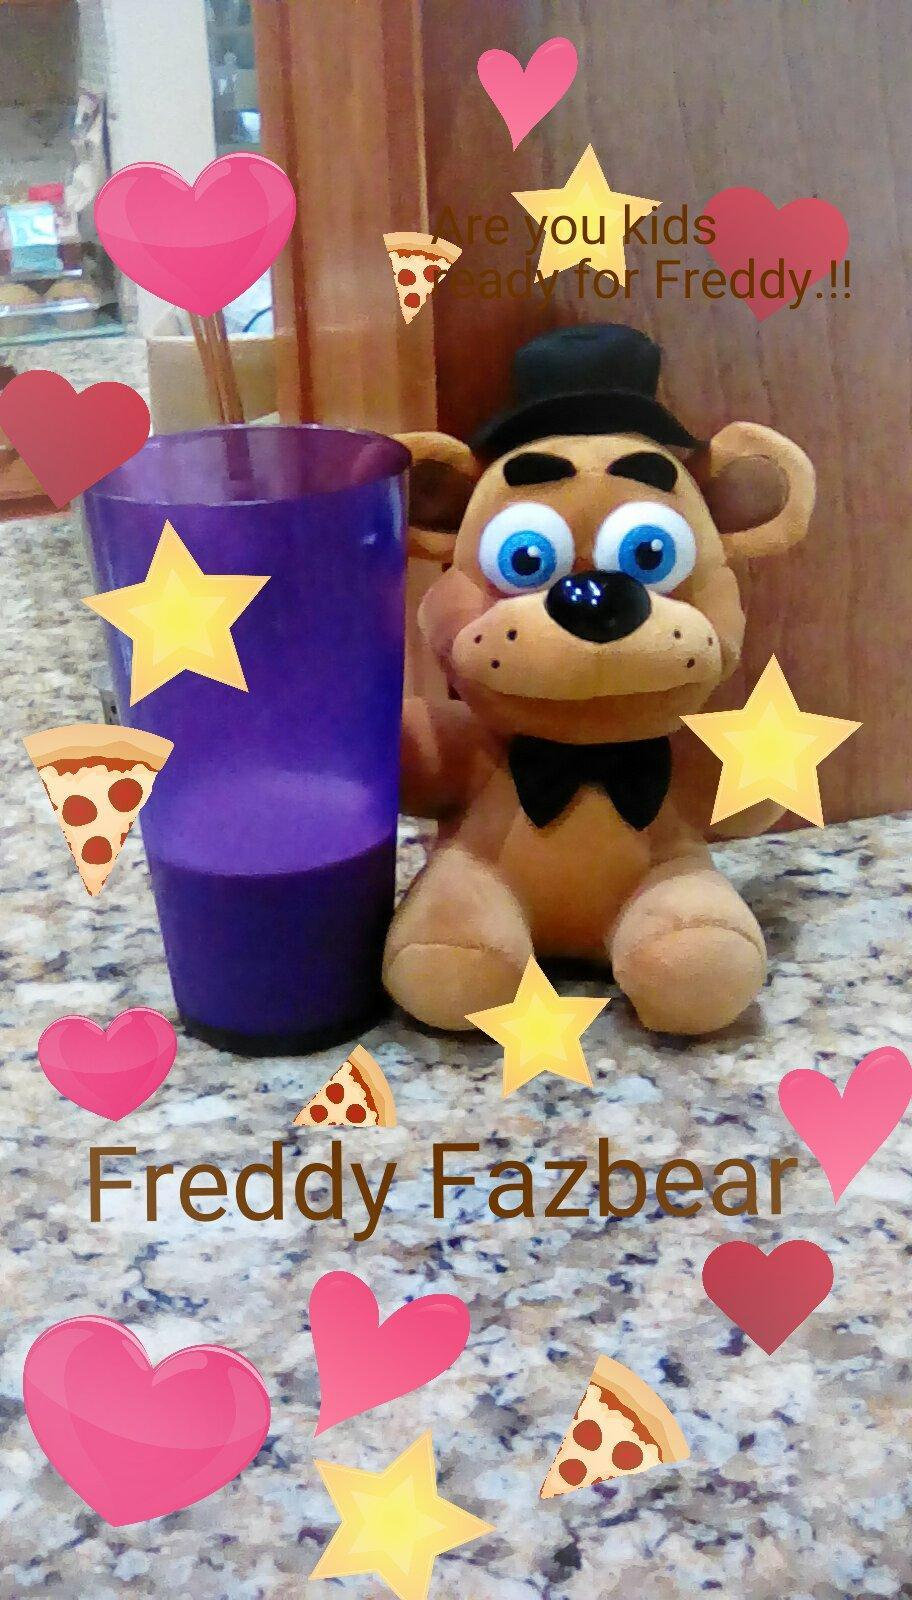 Look at Freddy!!! 💞